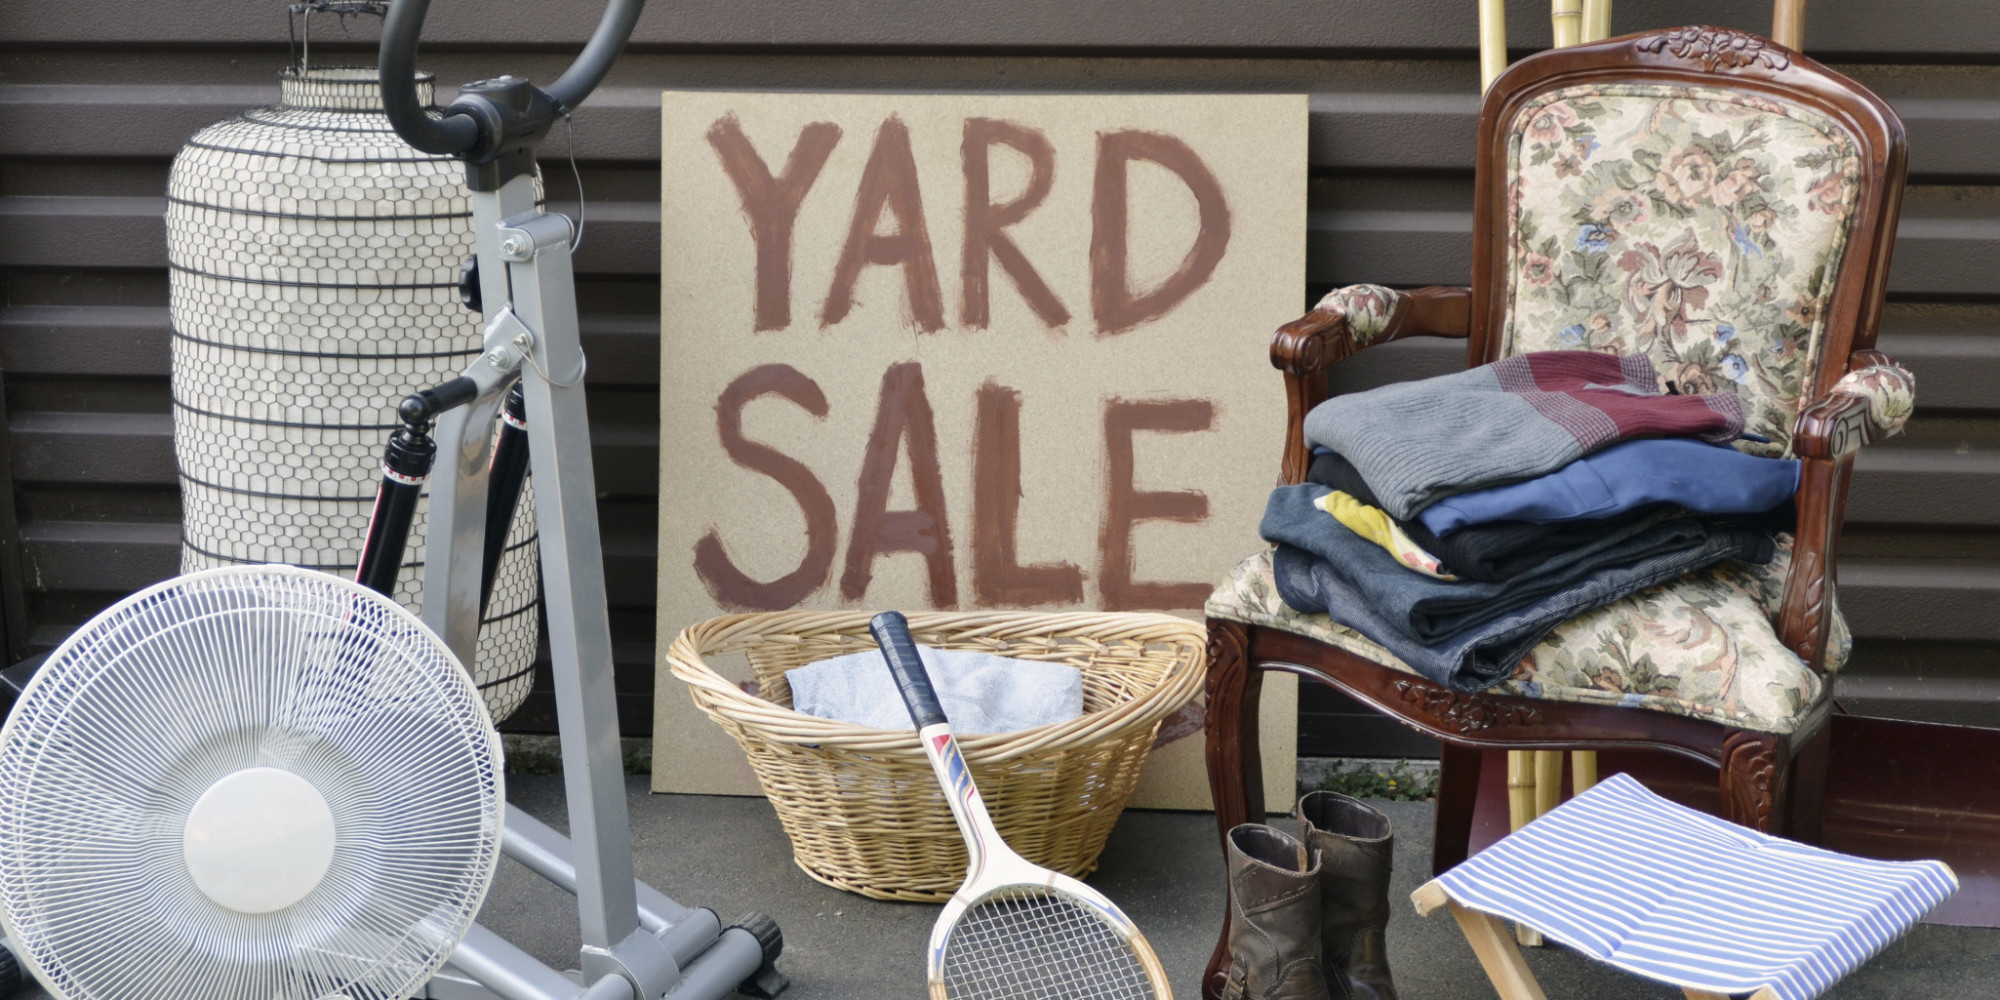 Top tips on how to sell your unwanted belongings